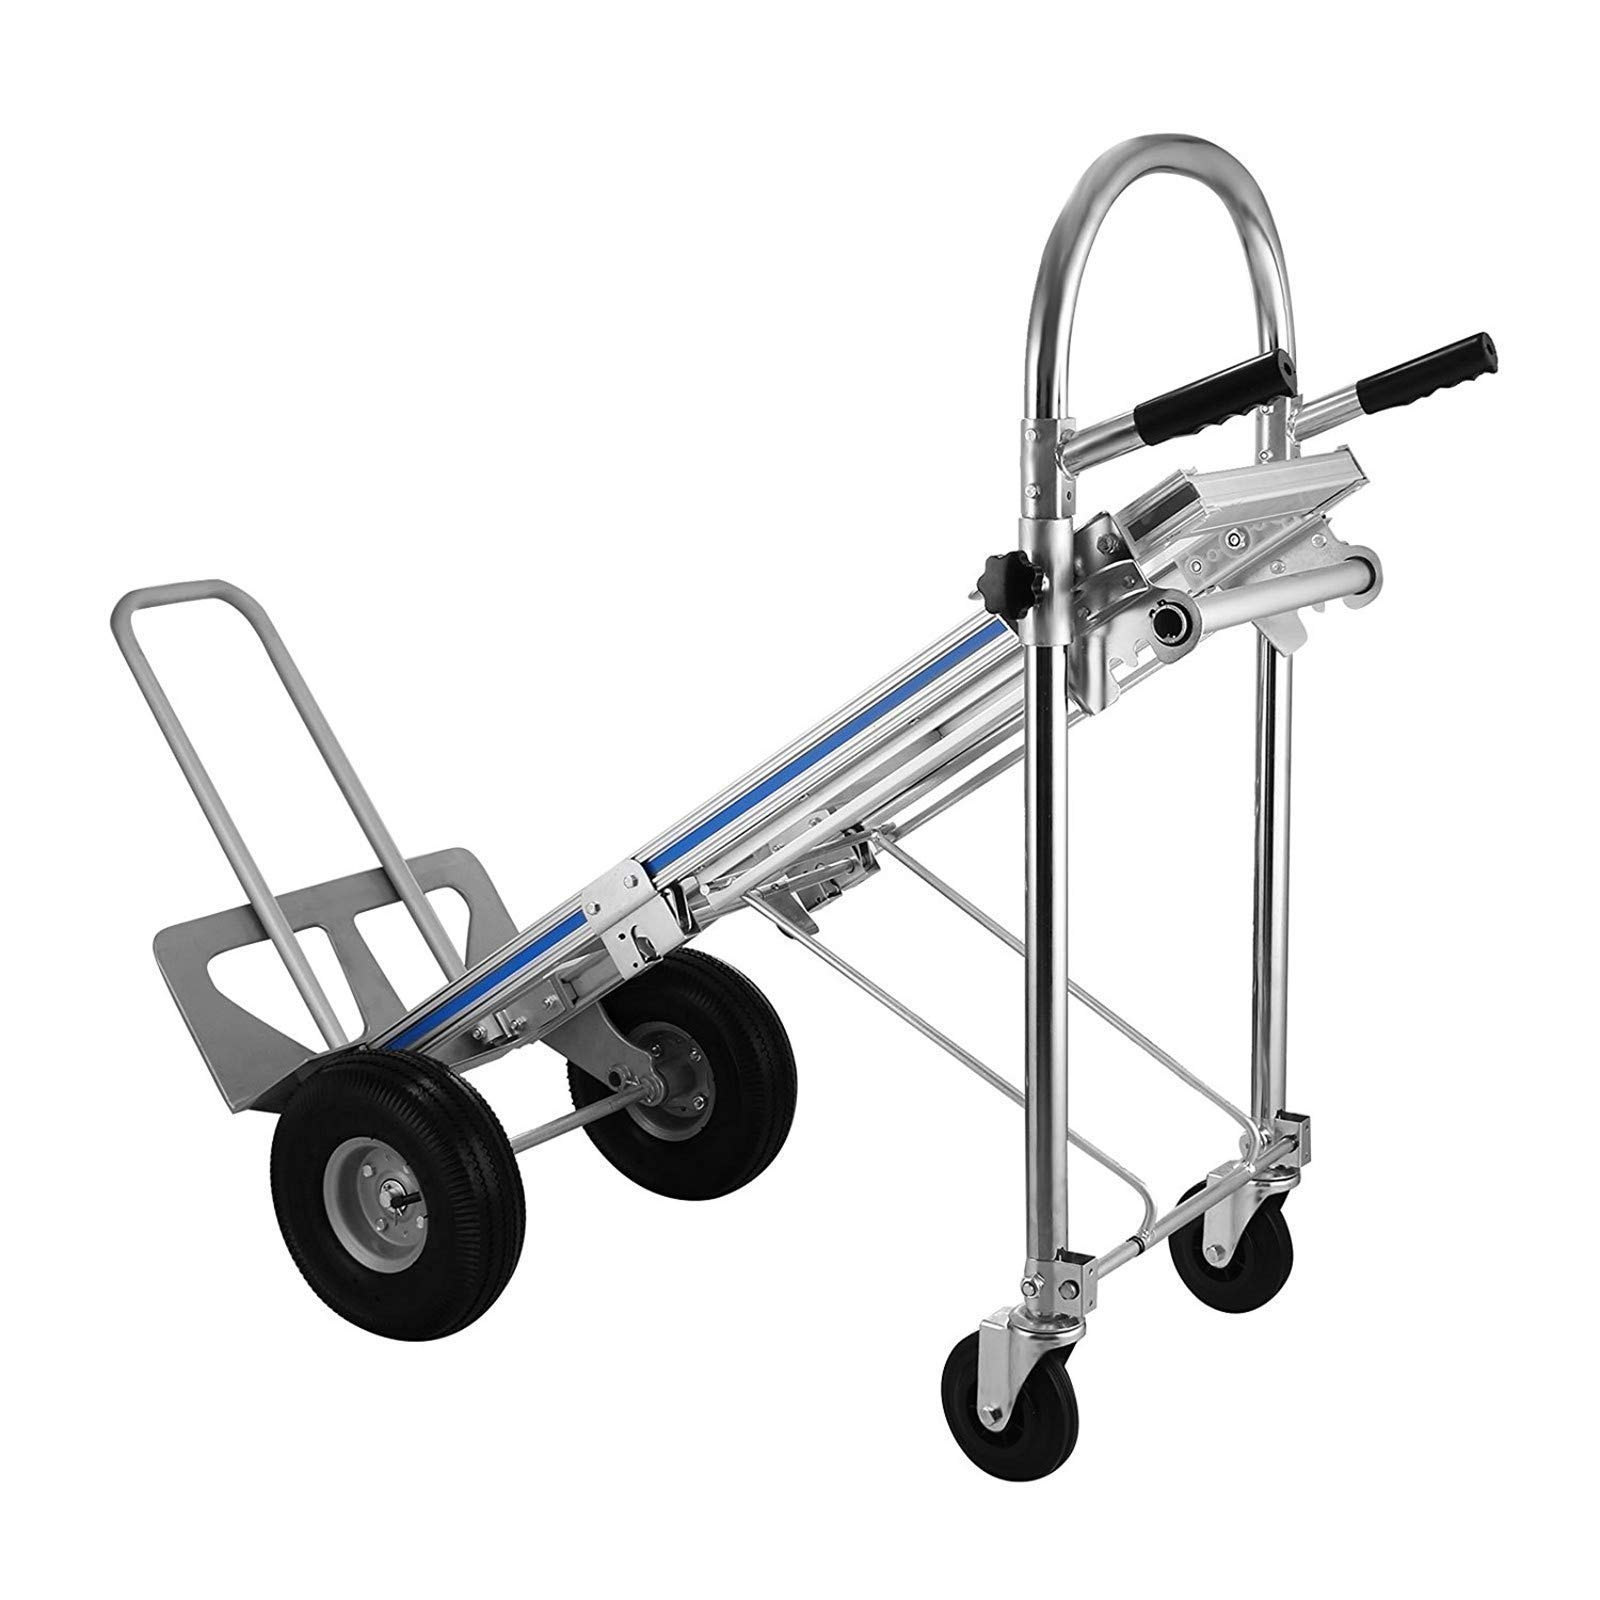 SHZOND Hand Truck 3 in 1 Convertible Hand Truck 770LBS Capacity Hand Truck Dolly 2 Wheel Dolly and 4 Wheel Cart with 10'' Pneumatic Wheels